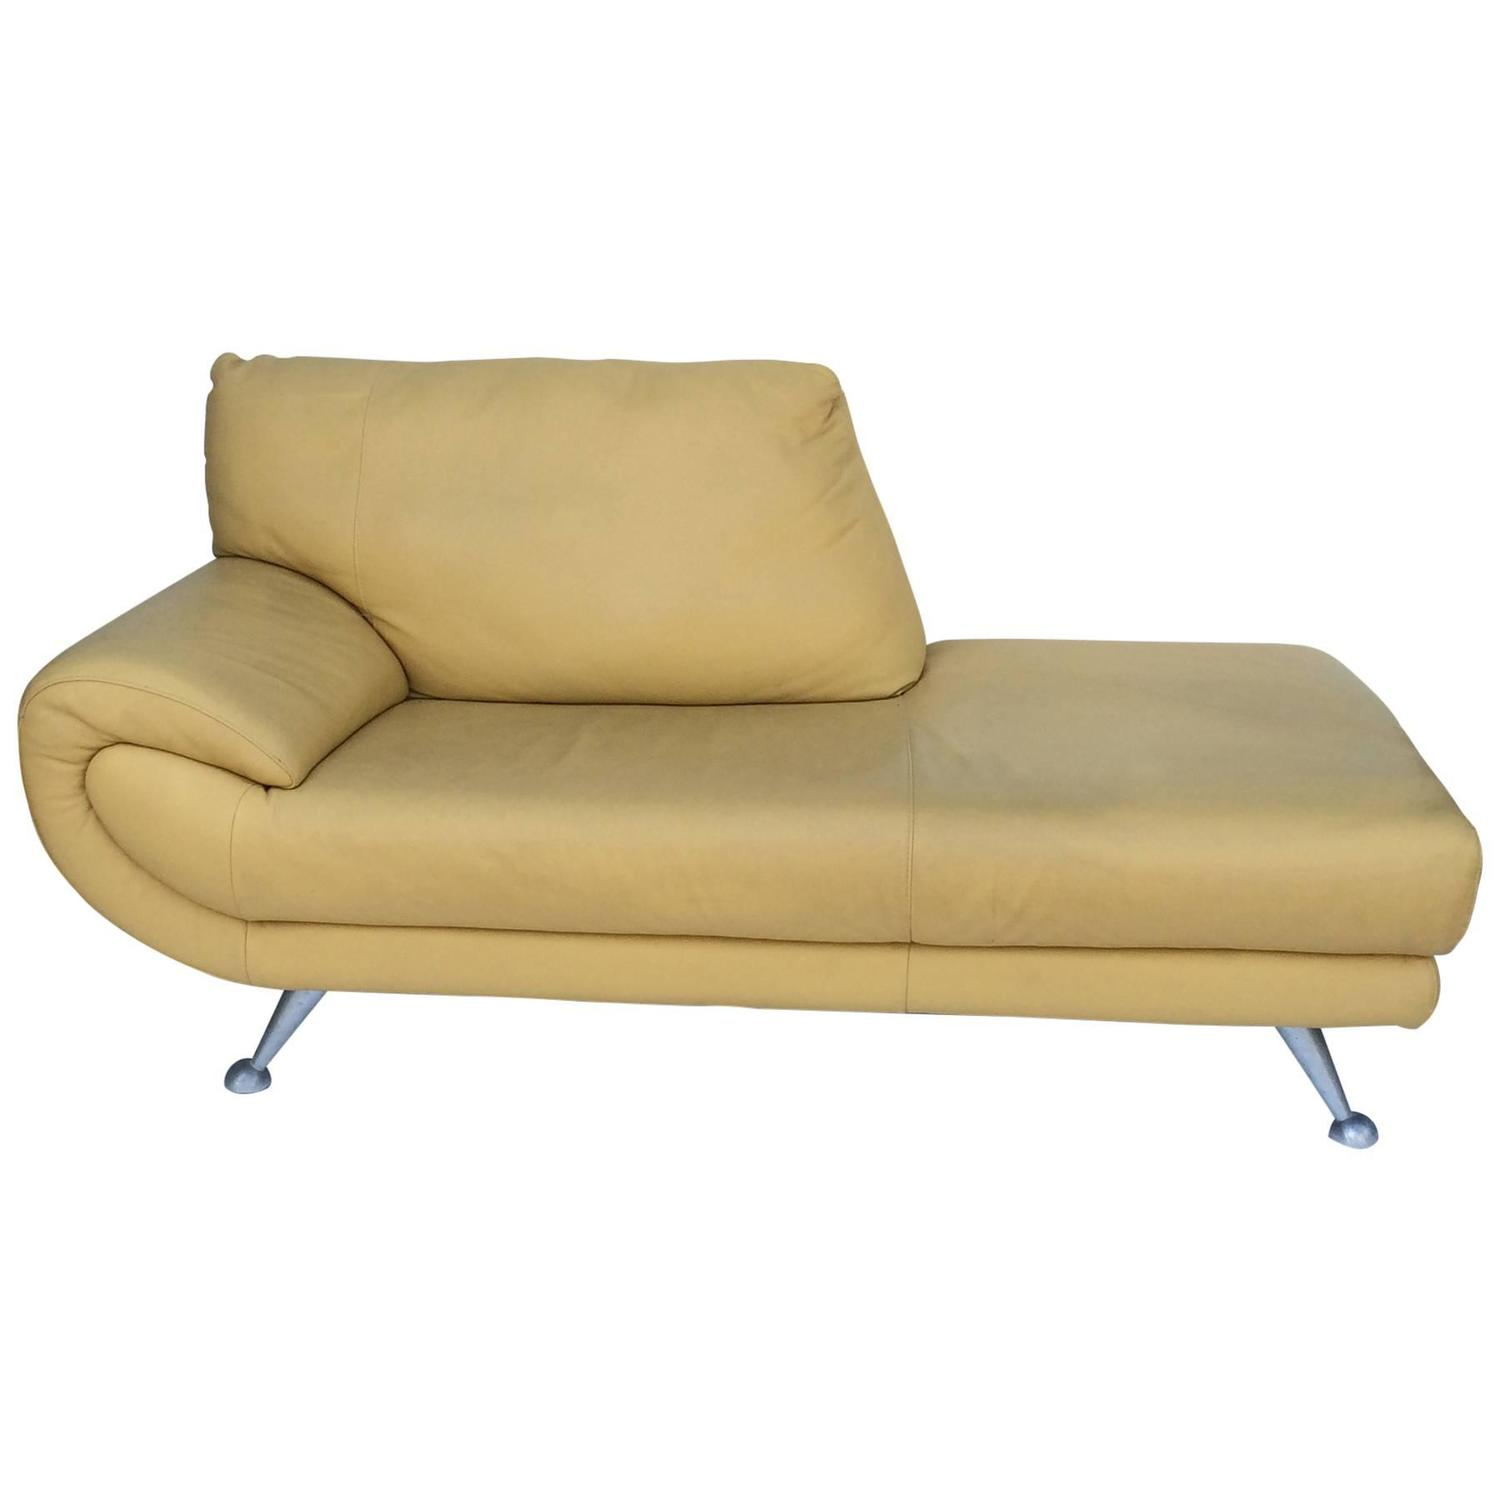 Leather Chaise Lounge Chair Nicoletti Leather Chaise Lounge For Sale At 1stdibs